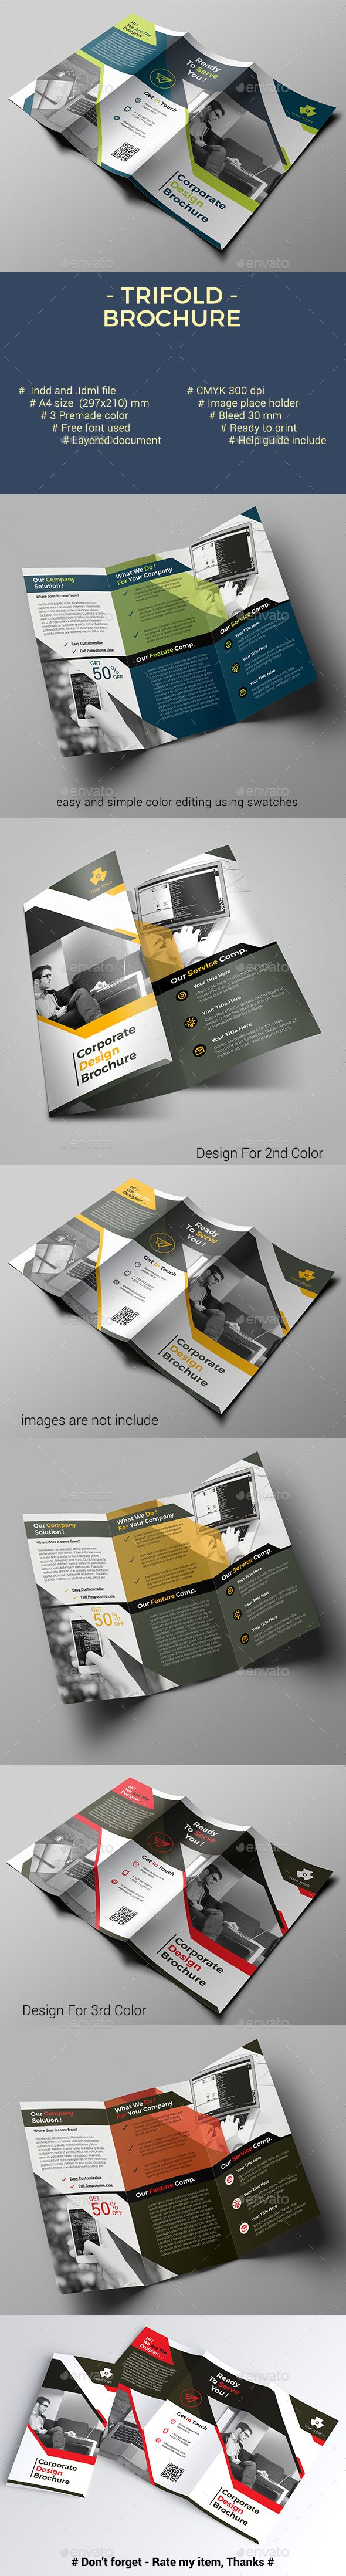 Trifold Brochure #branding #agency  • Download here → https://graphicriver.net/item/trifold-brochure/21043265?ref=pxcr